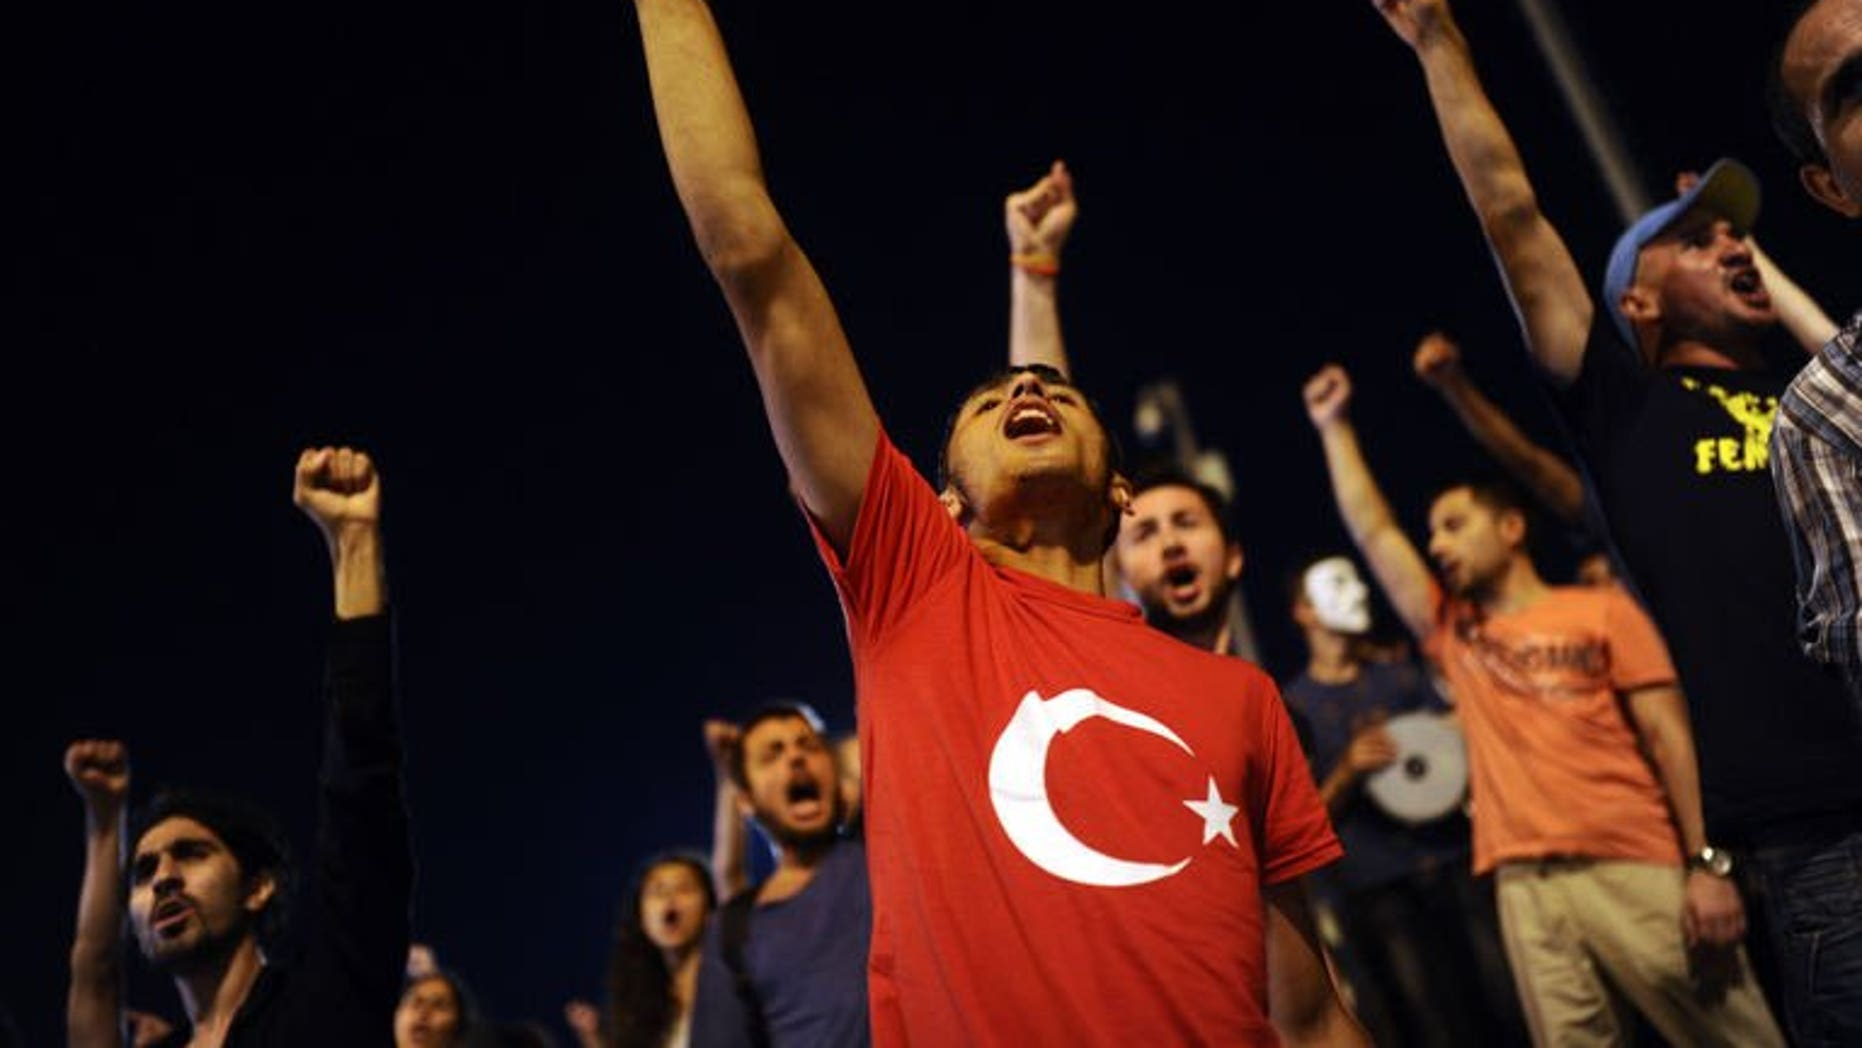 Turkish anti-government protesters shout slogans at the entrance of Gezi Park on July 11, 2013 in Istanbul. Turkish riot police on Saturday fired rubber bullets, tear gas and water cannon to disperse hundreds of protesters trying to enter an Istanbul square that was the cradle of deadly unrest that engulfed the country in June.